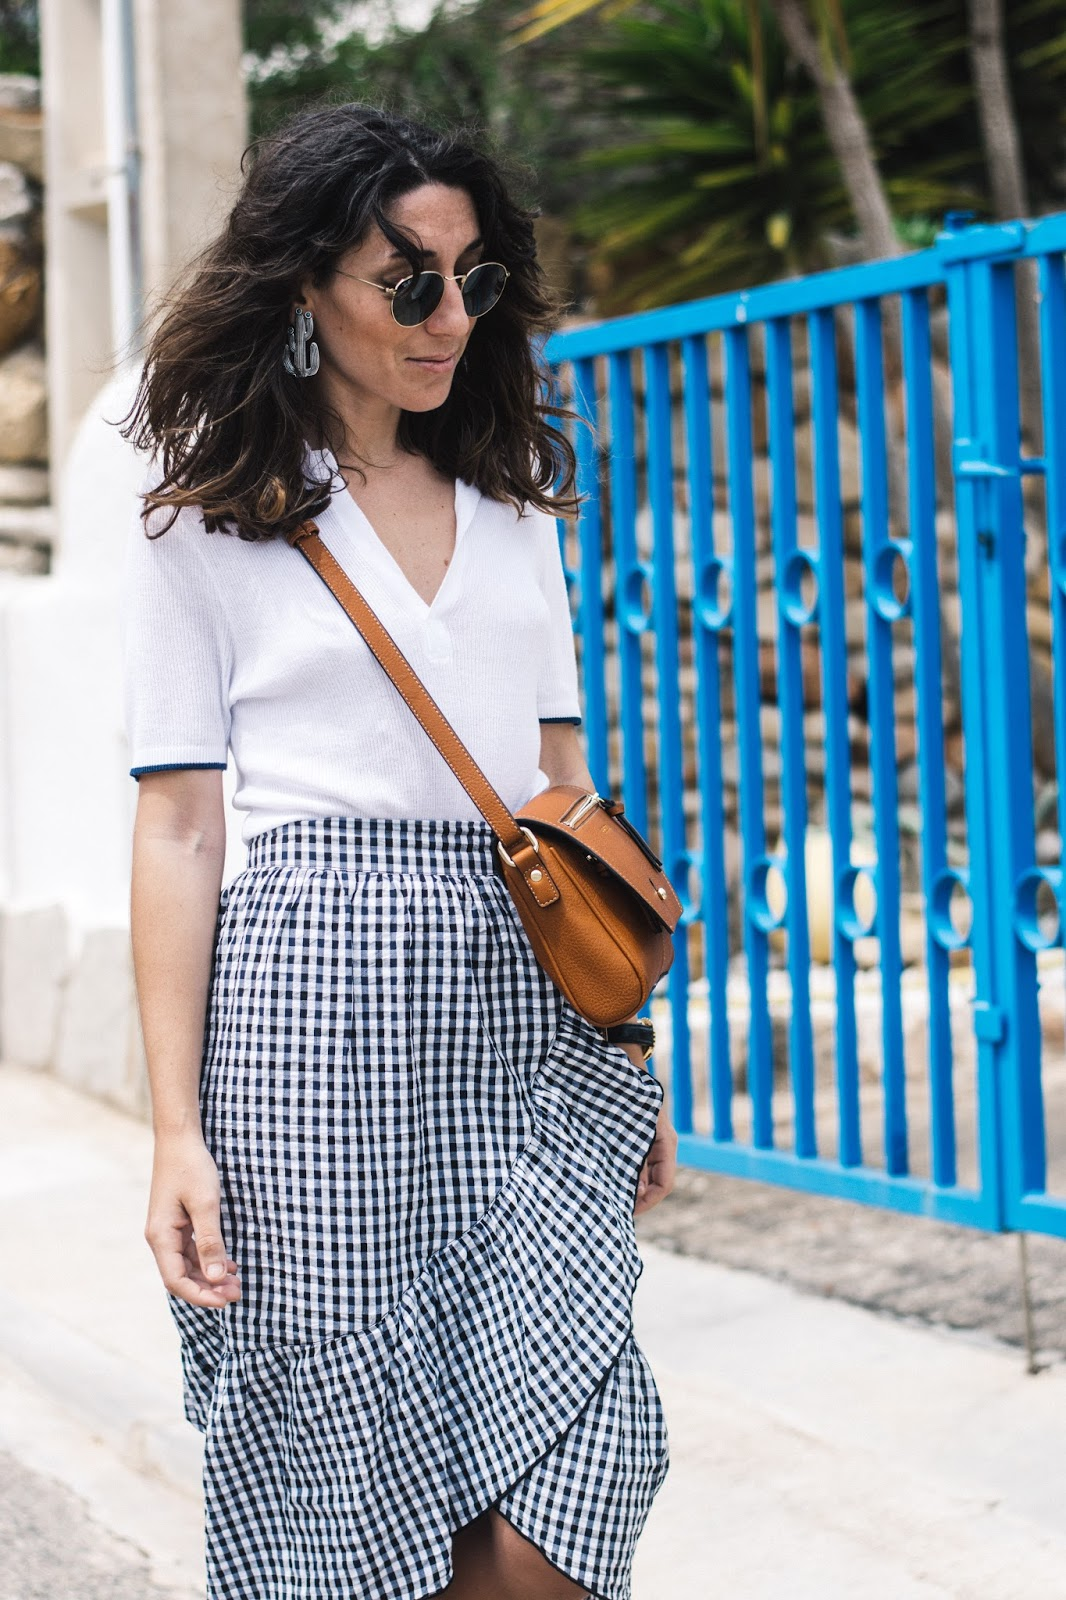 gingham_print_asos_skirt_pepe_moll_bag_hm_slip_on_hm_tennis_top-13